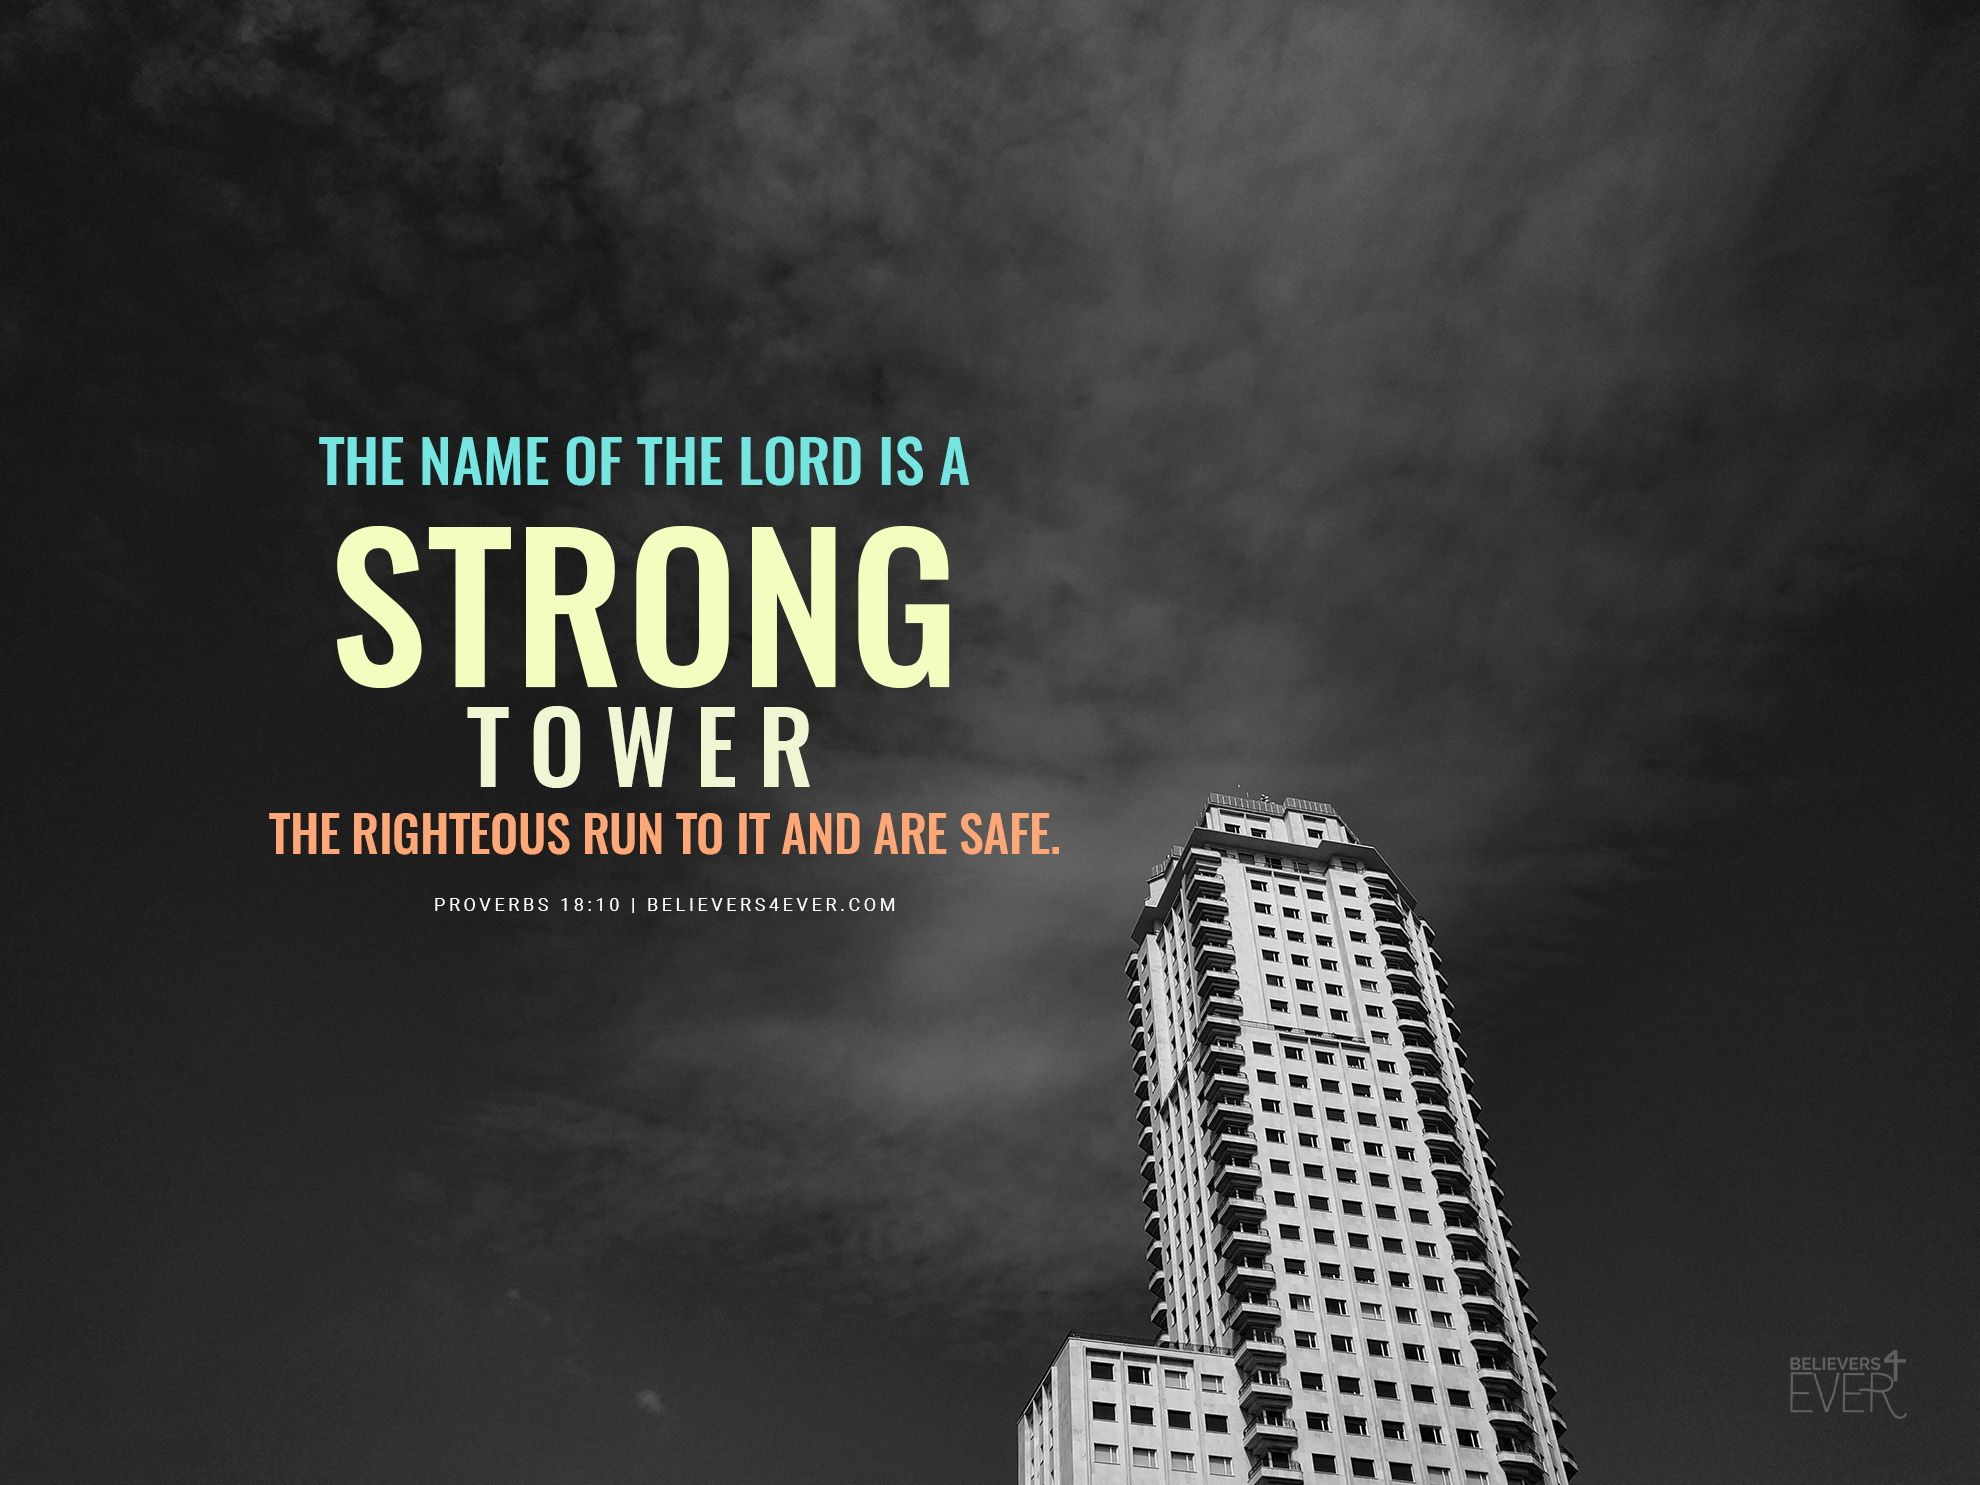 The Name Of The Lord Is A Strong Tower Free Christian Wallpaper Christian Wallpaper Christian Wallpaper Hd